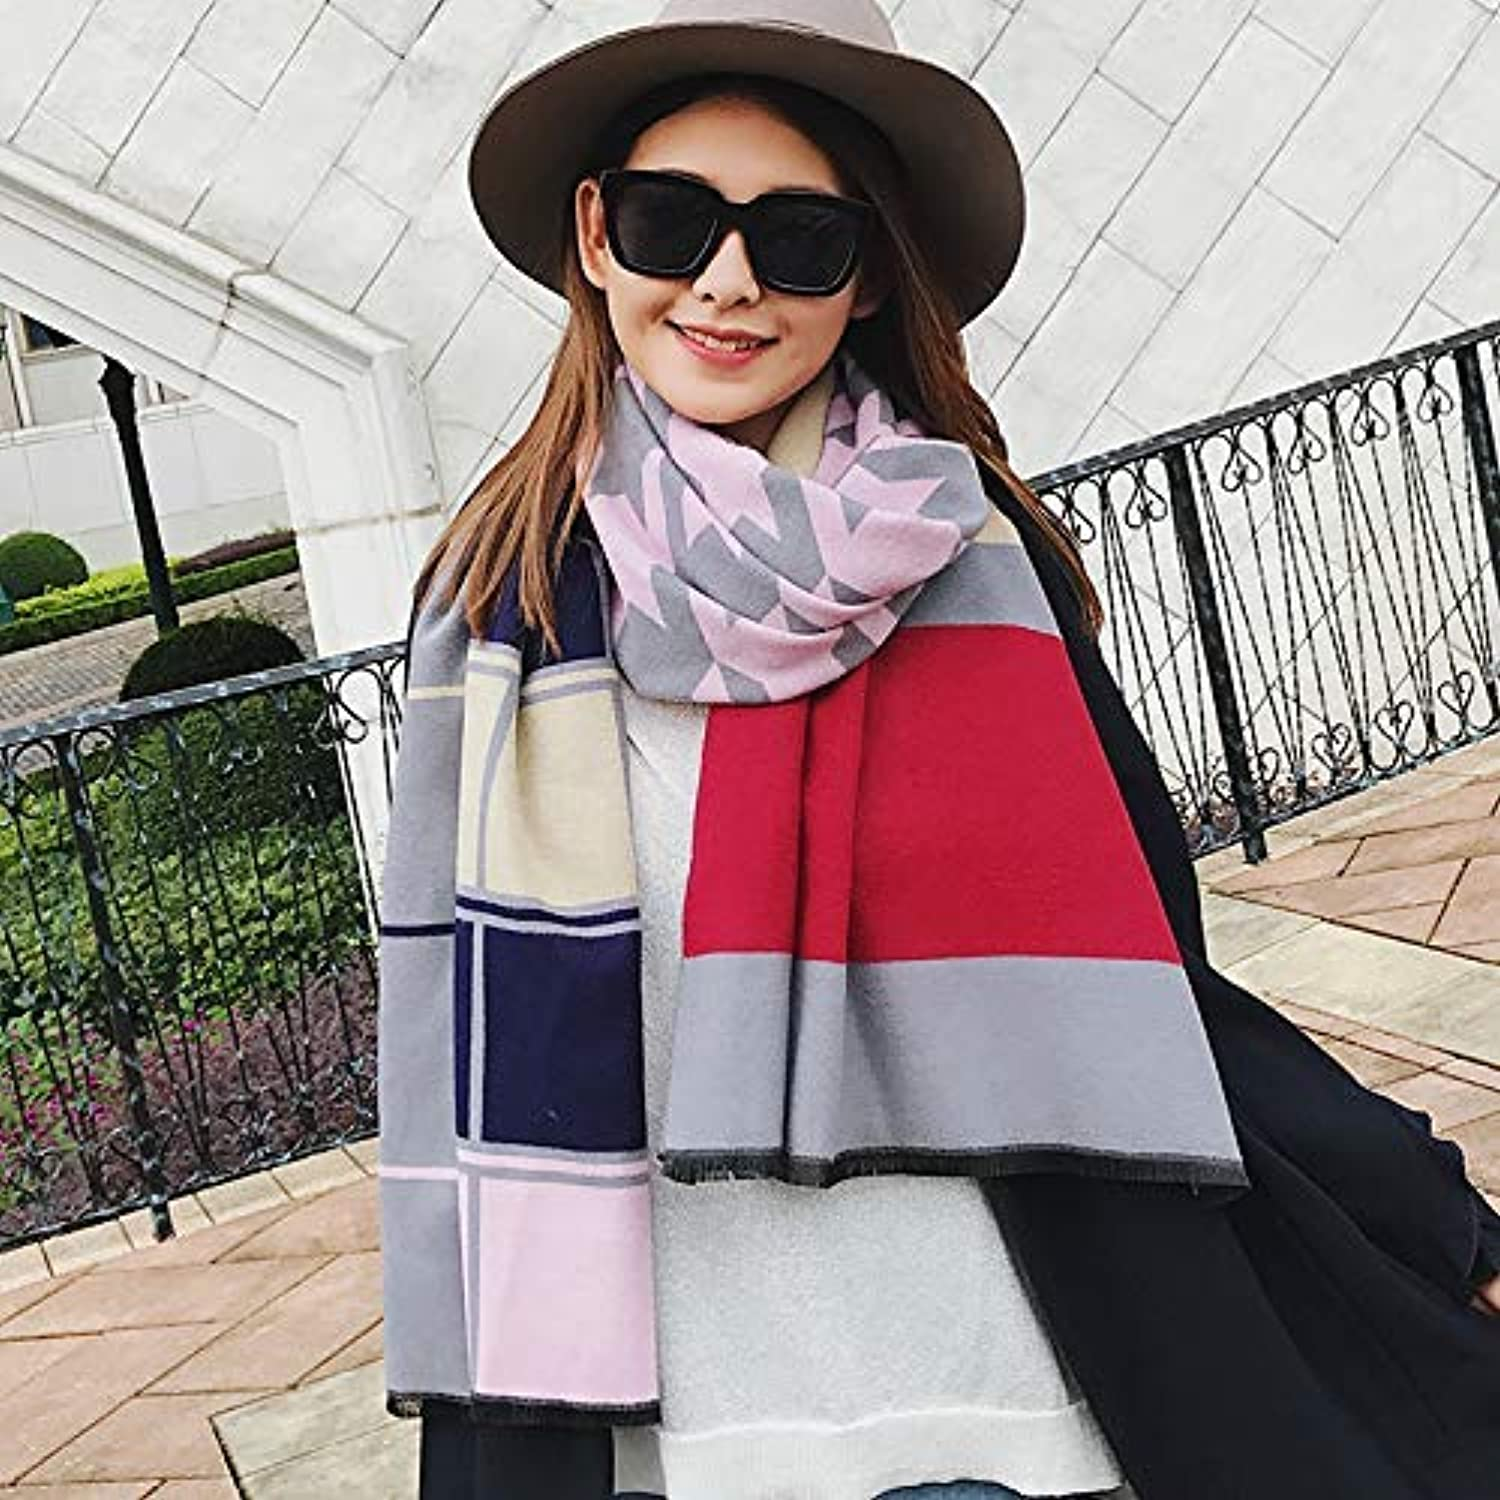 Scarf for Gift Autumn and Winter DoubleSided Thickening Scarf air Conditioning Warm Wild Plaid Big Shawl Dualuse Collar Female (Size   E) Classic Scarf (Size   E)